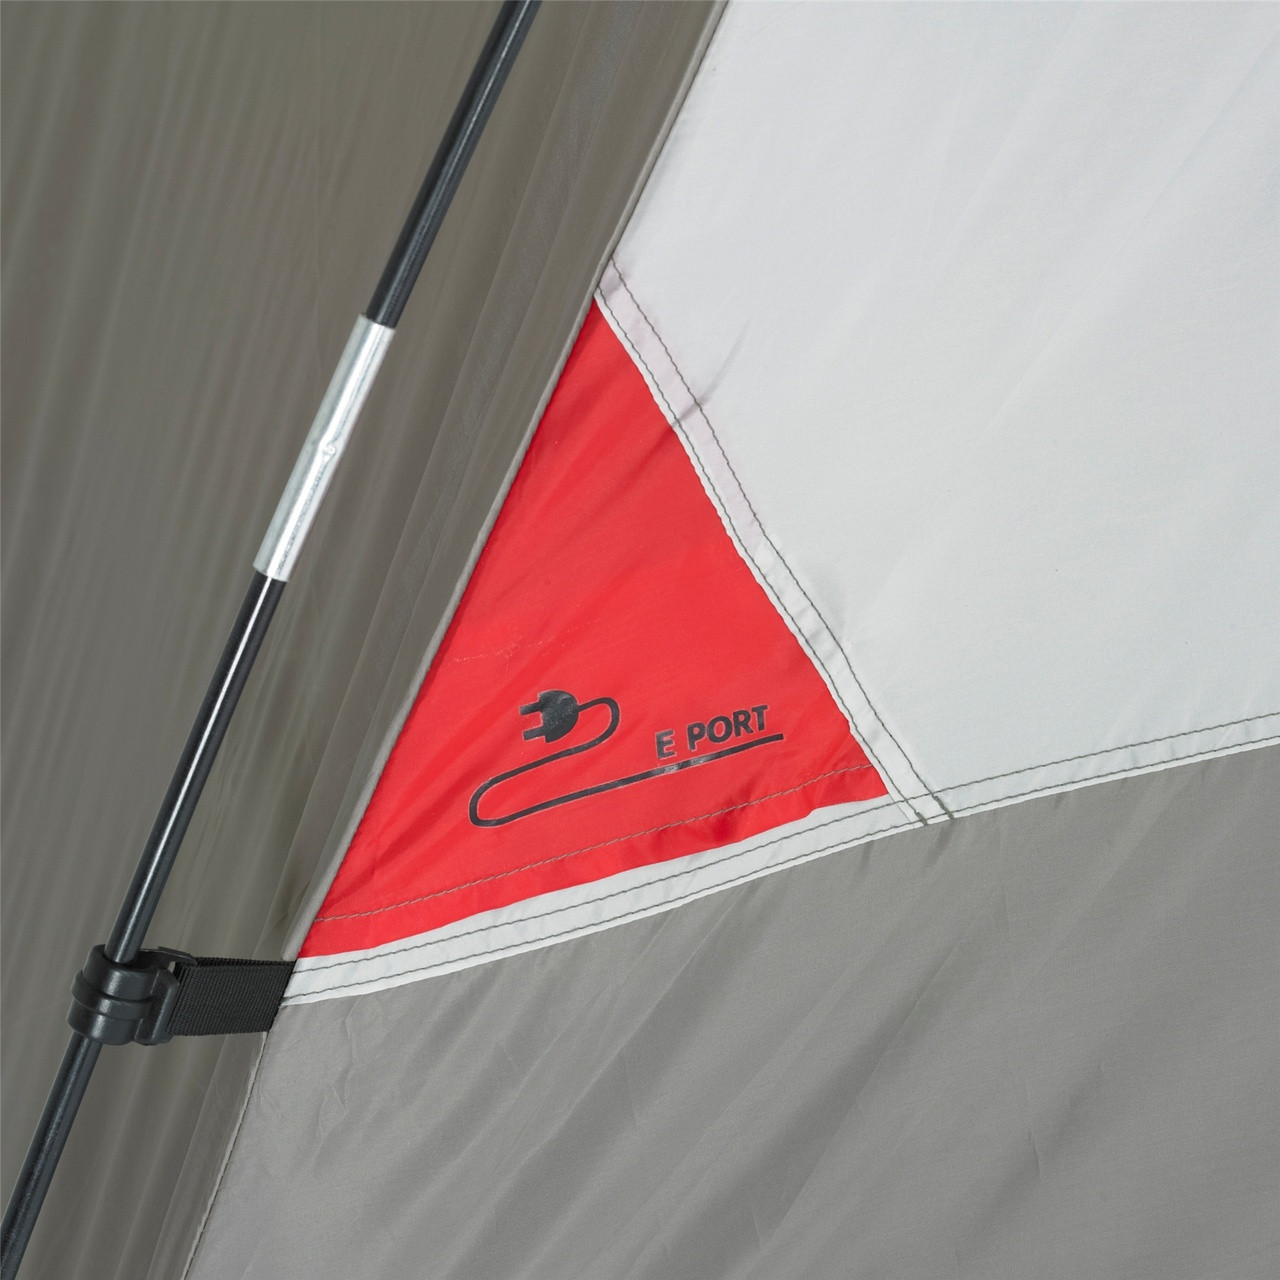 Close up view of the E Port slot on the Wenzel Pine Ridge 5 tent